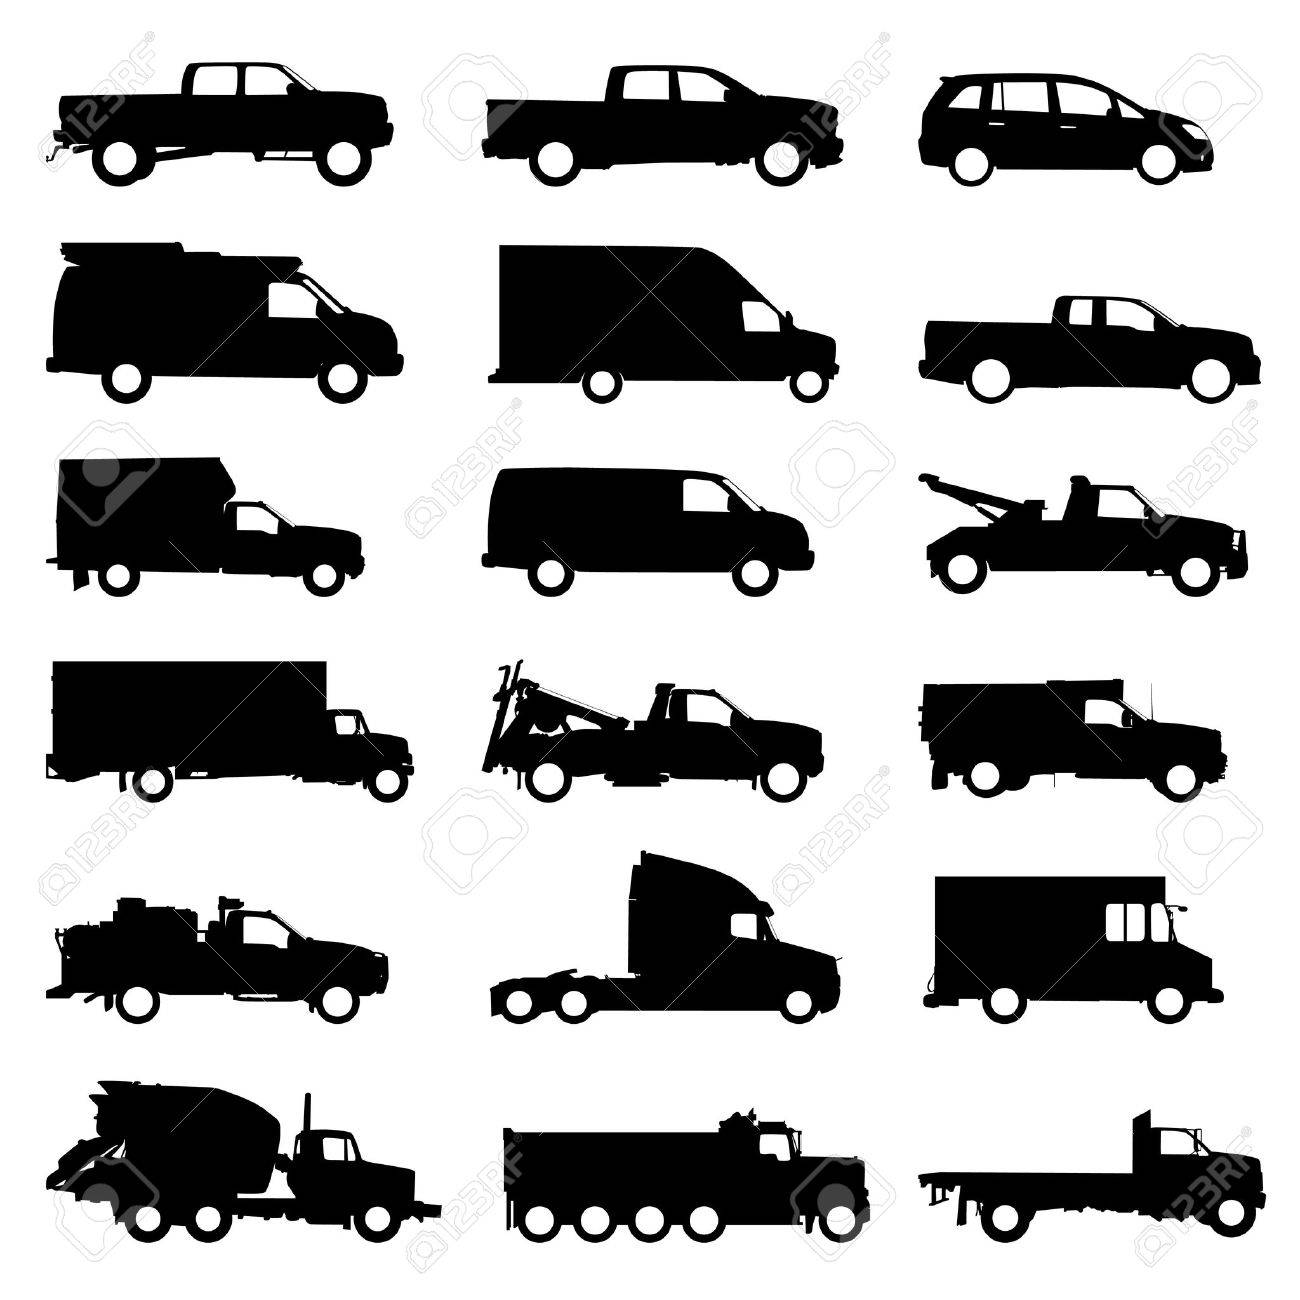 Ford Pickup Truck Silhouette Images Free Download 1955 F100 Vector Transportation